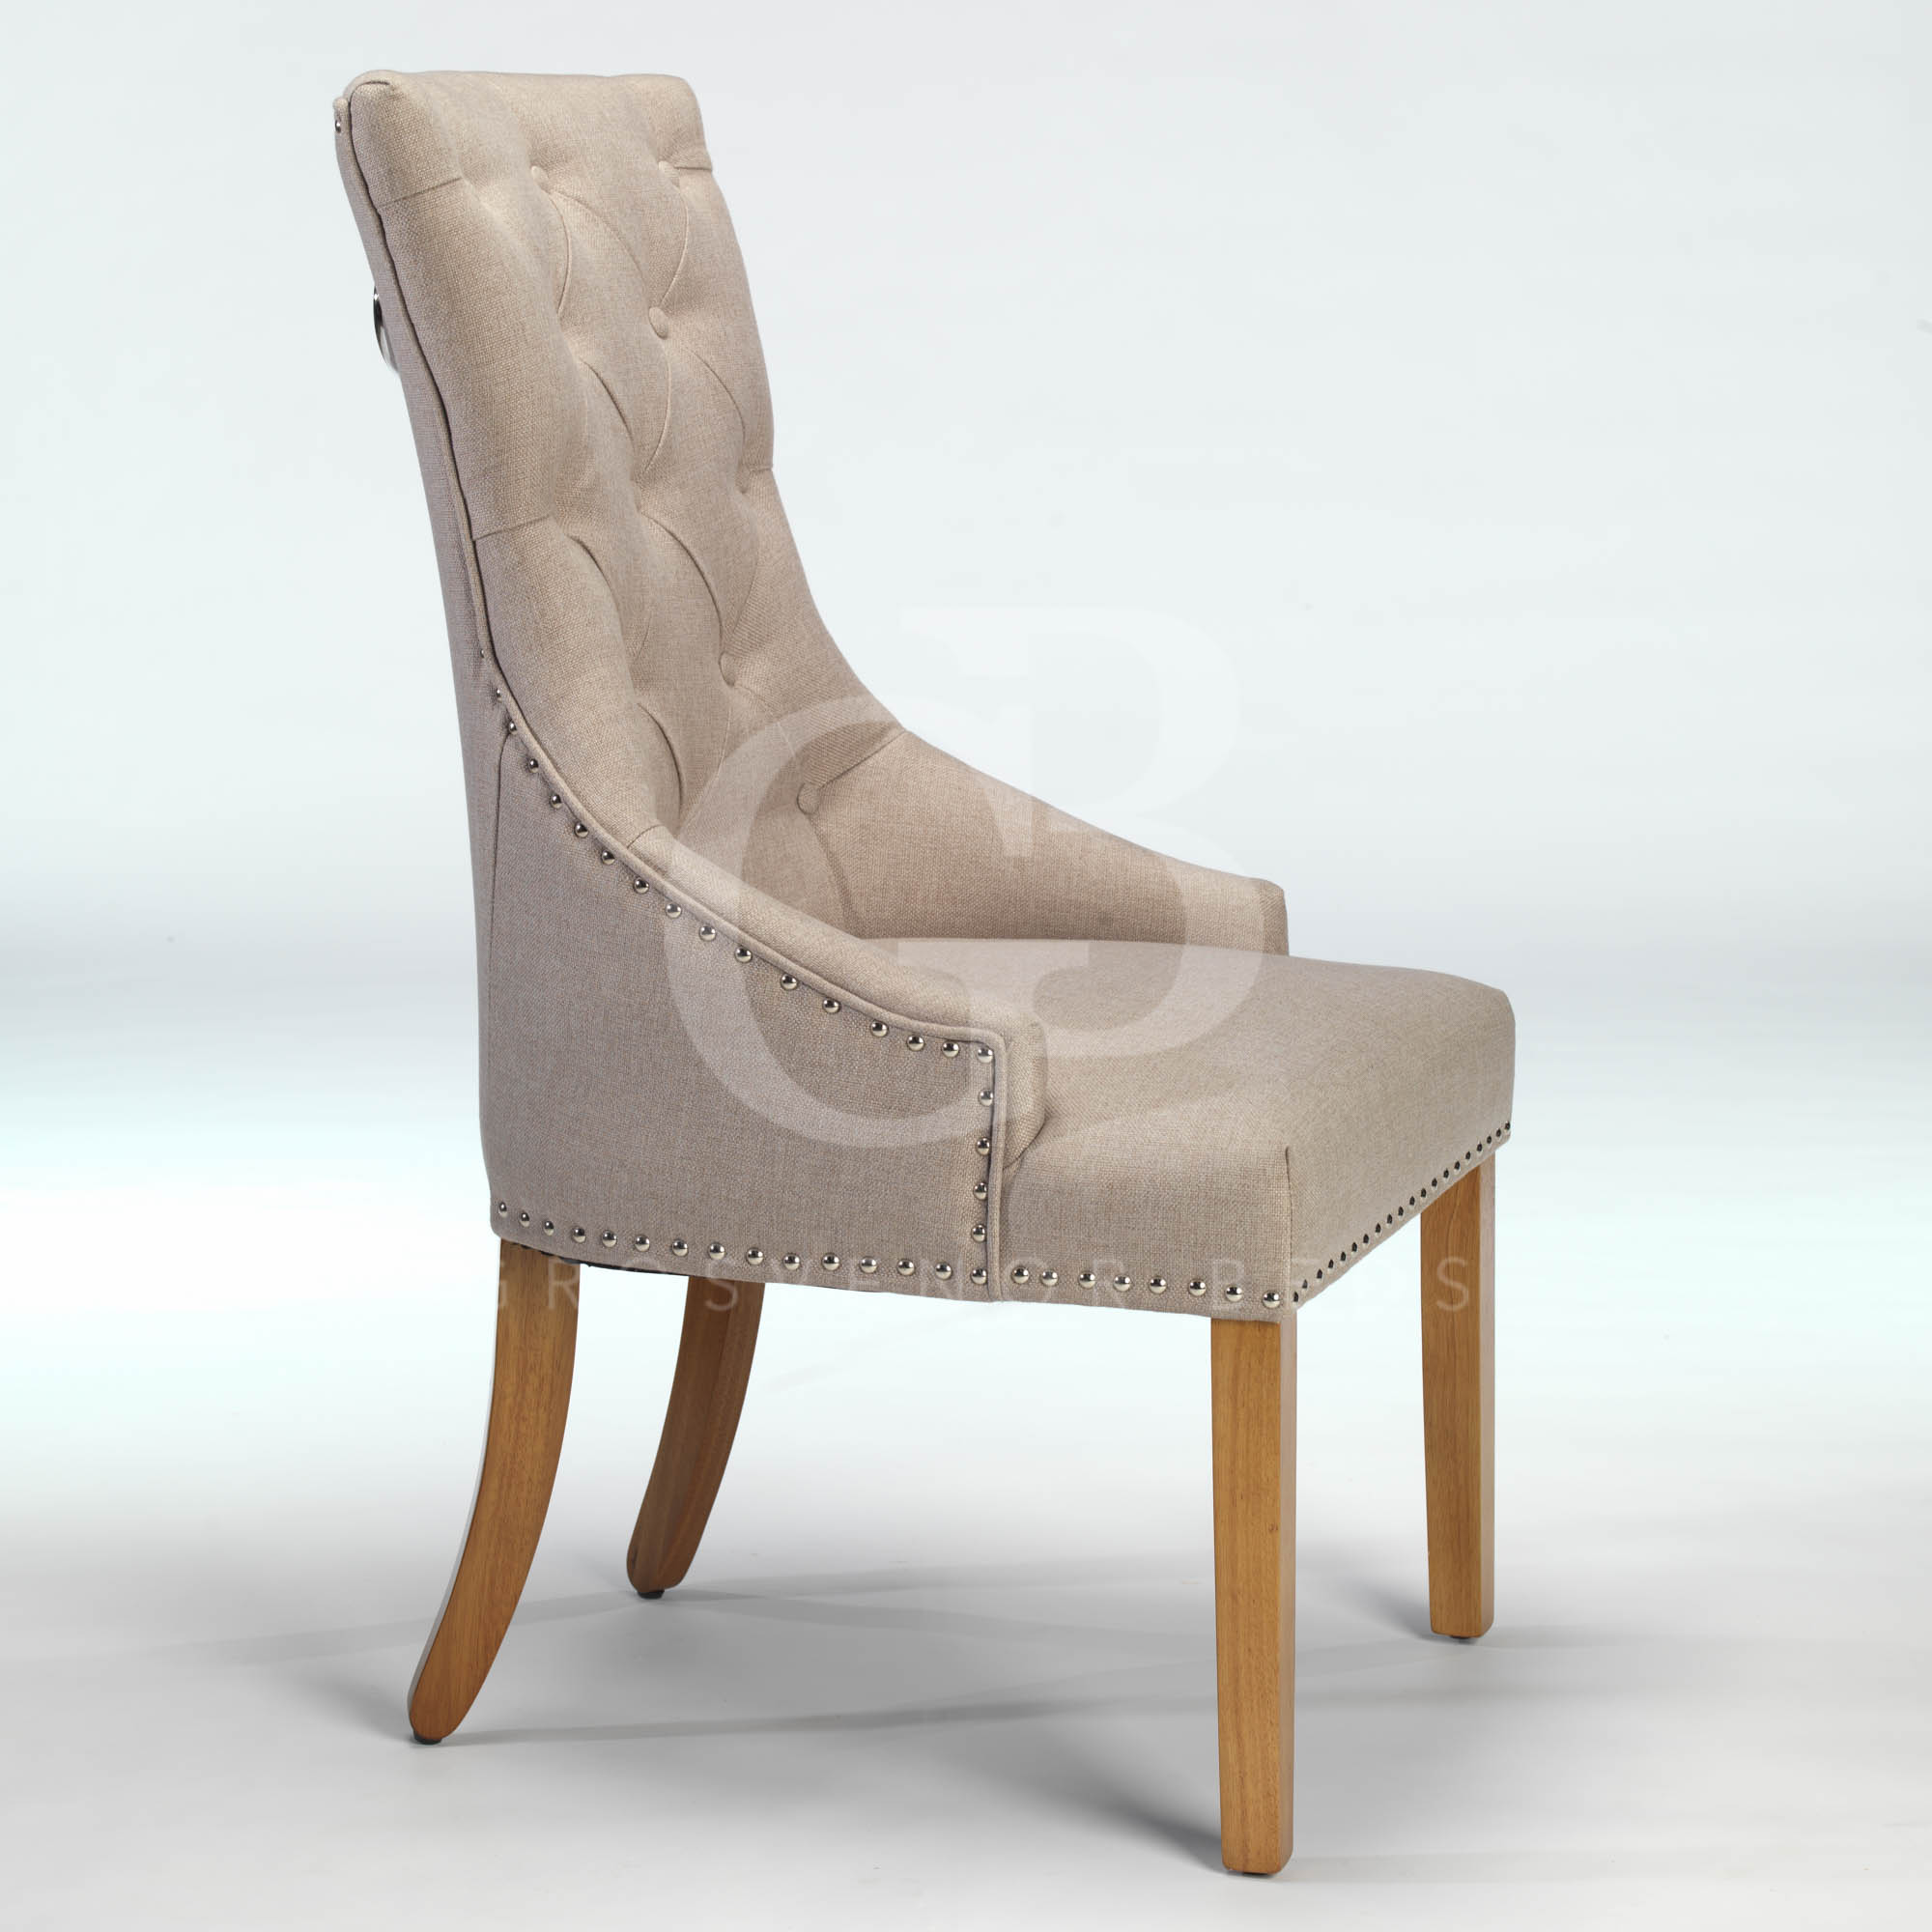 ring back dining chair baxton studio rocking new upholstered buttoned with studs